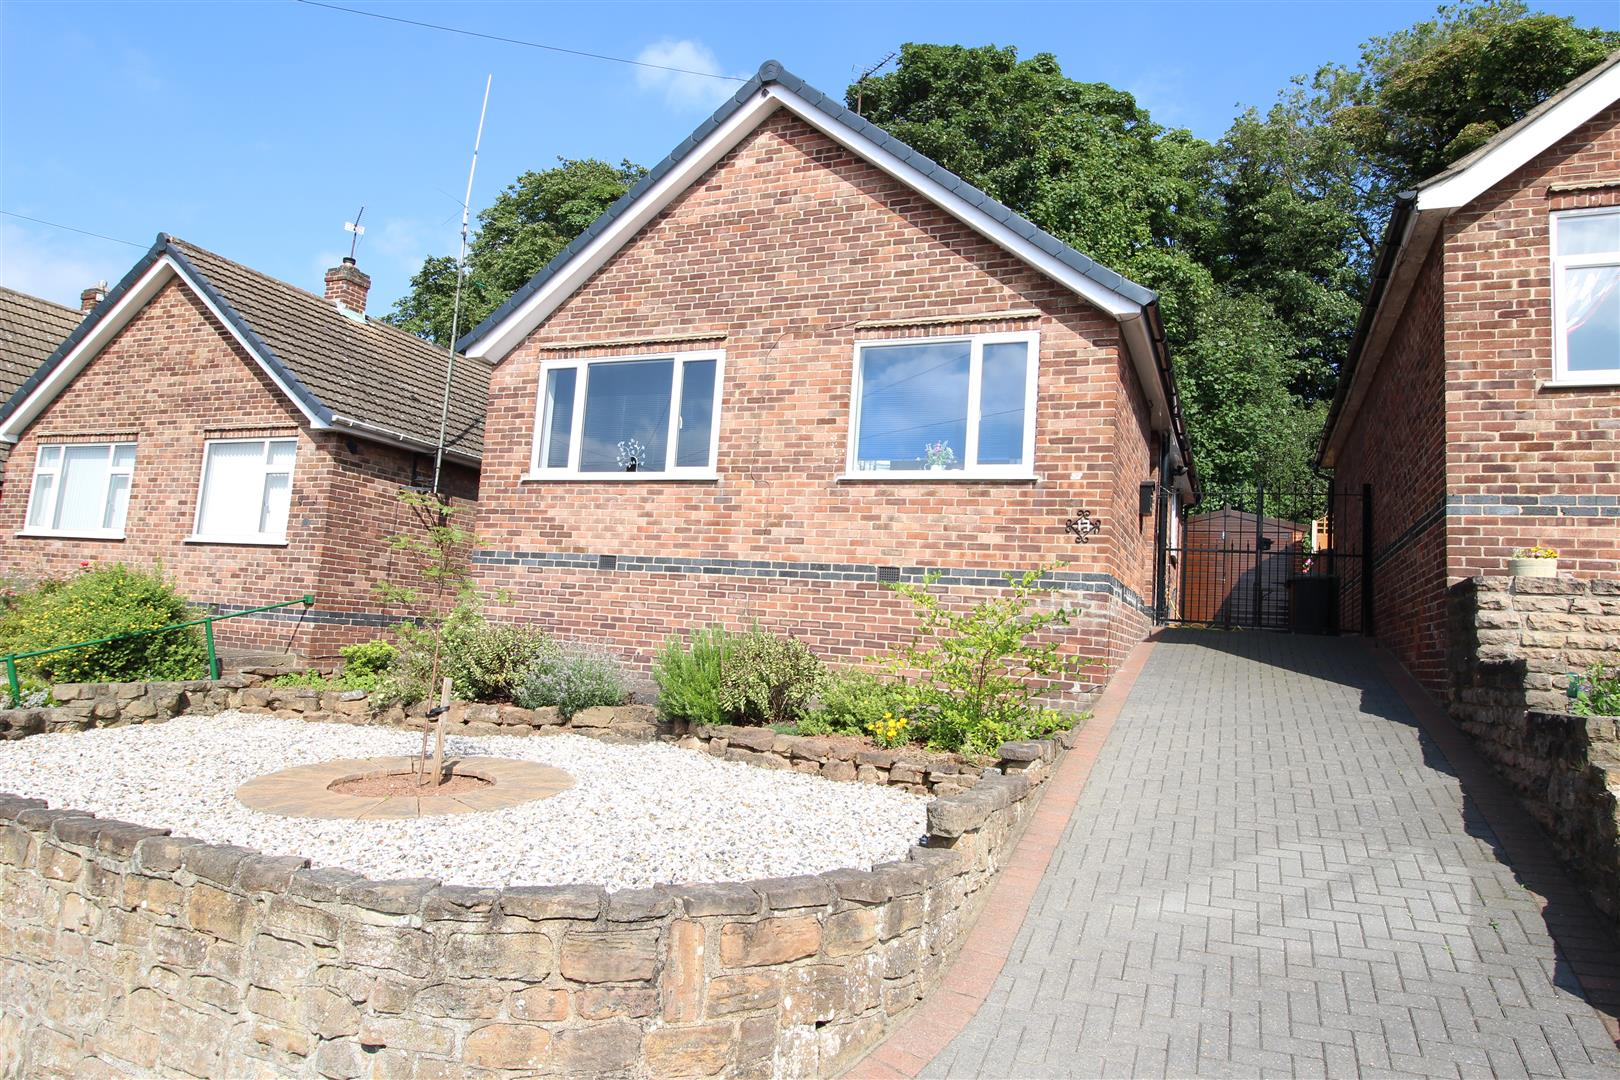 2 Bedrooms Detached Bungalow for sale in Blake Road, Stapleford